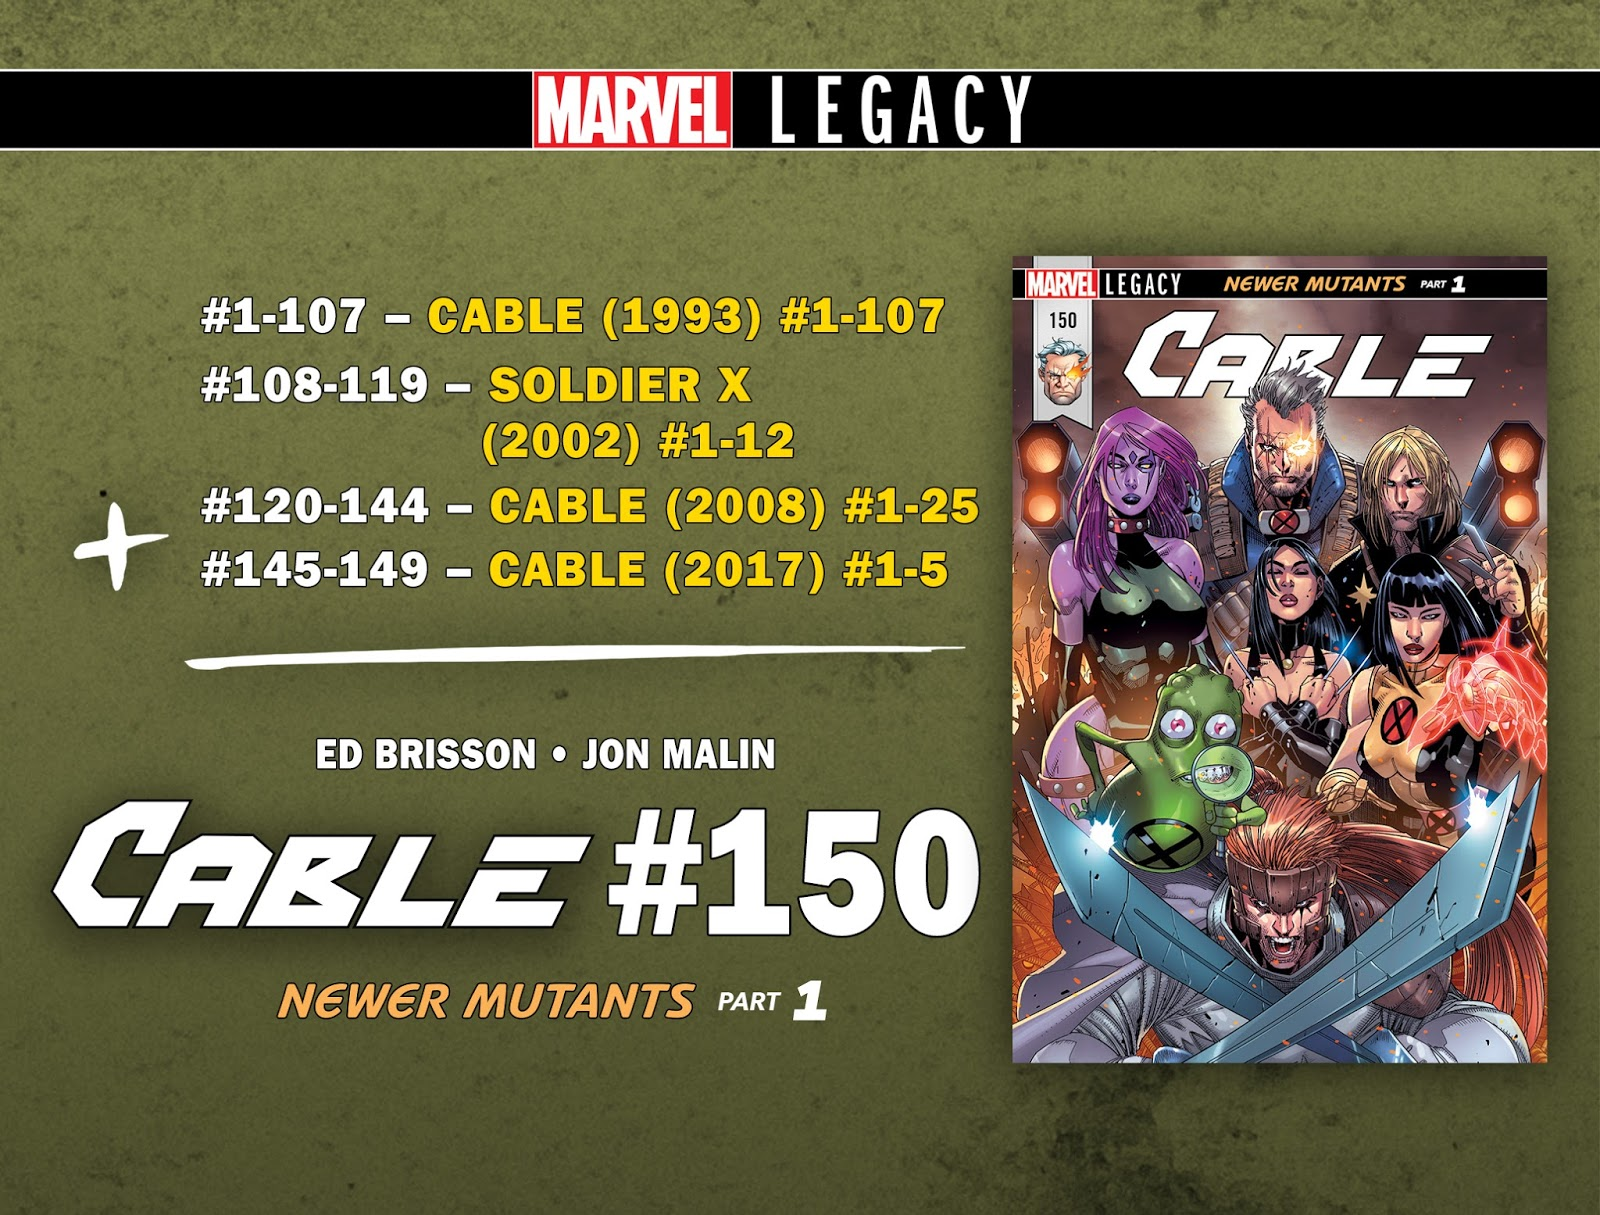 CABLE #150: THE NEWER MUTANTS PART 1